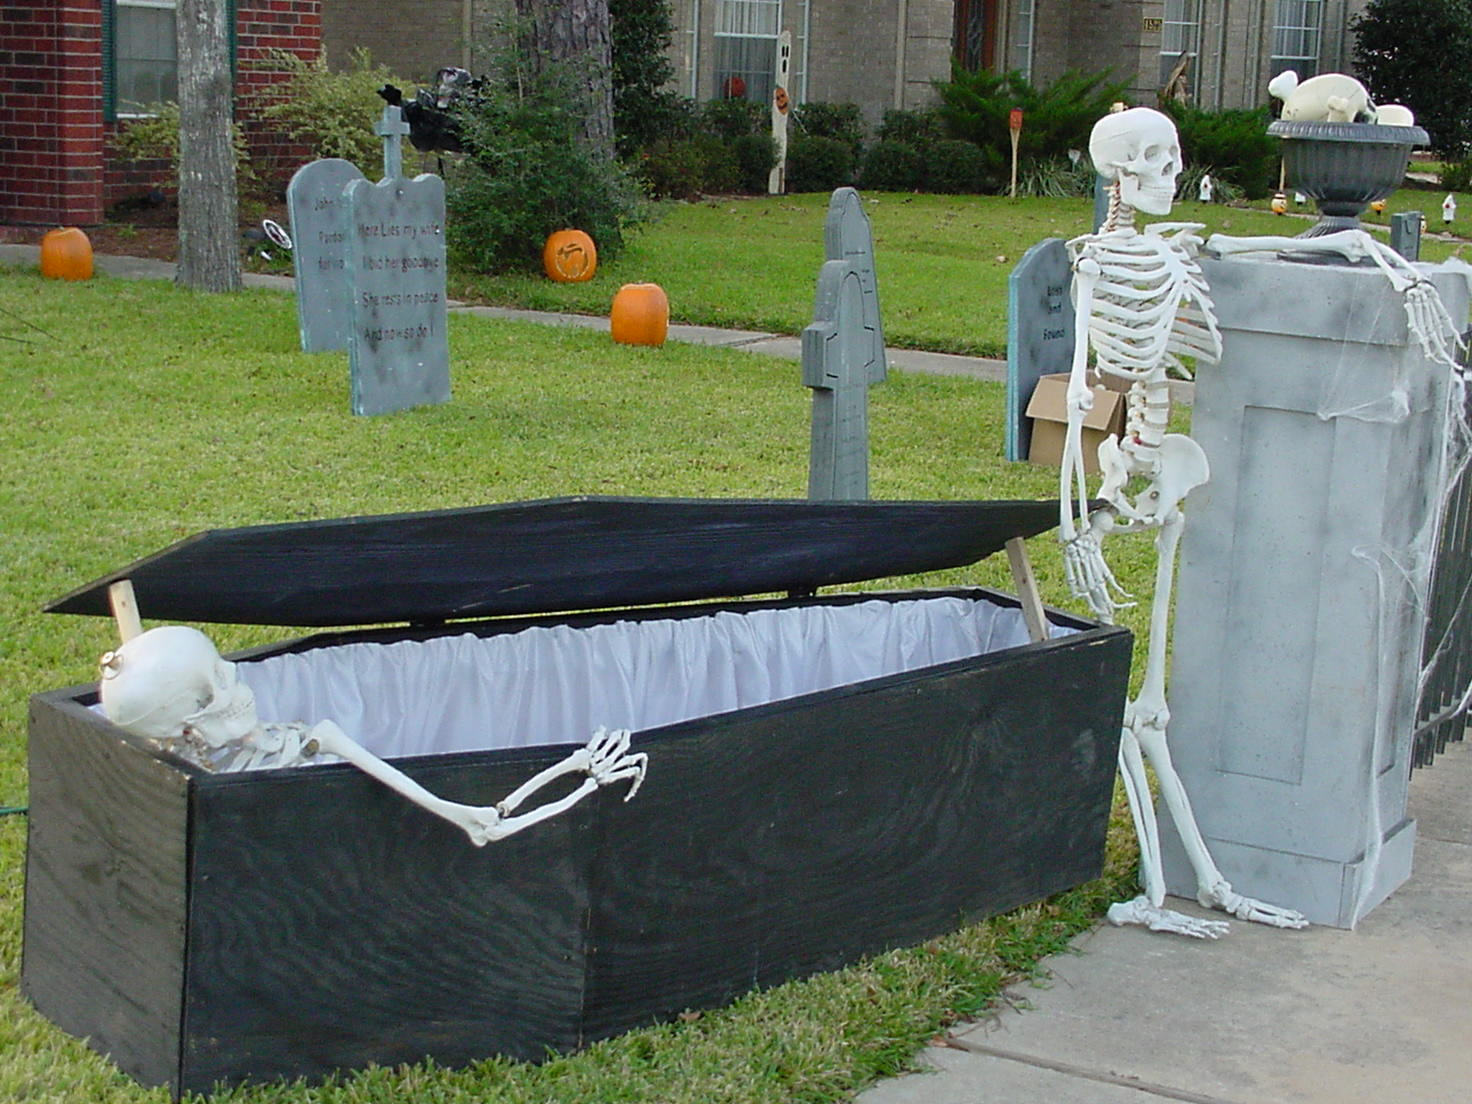 Cardboard Caskets For Sale http://picsbox.biz/key/cardboard%20halloween%20coffins